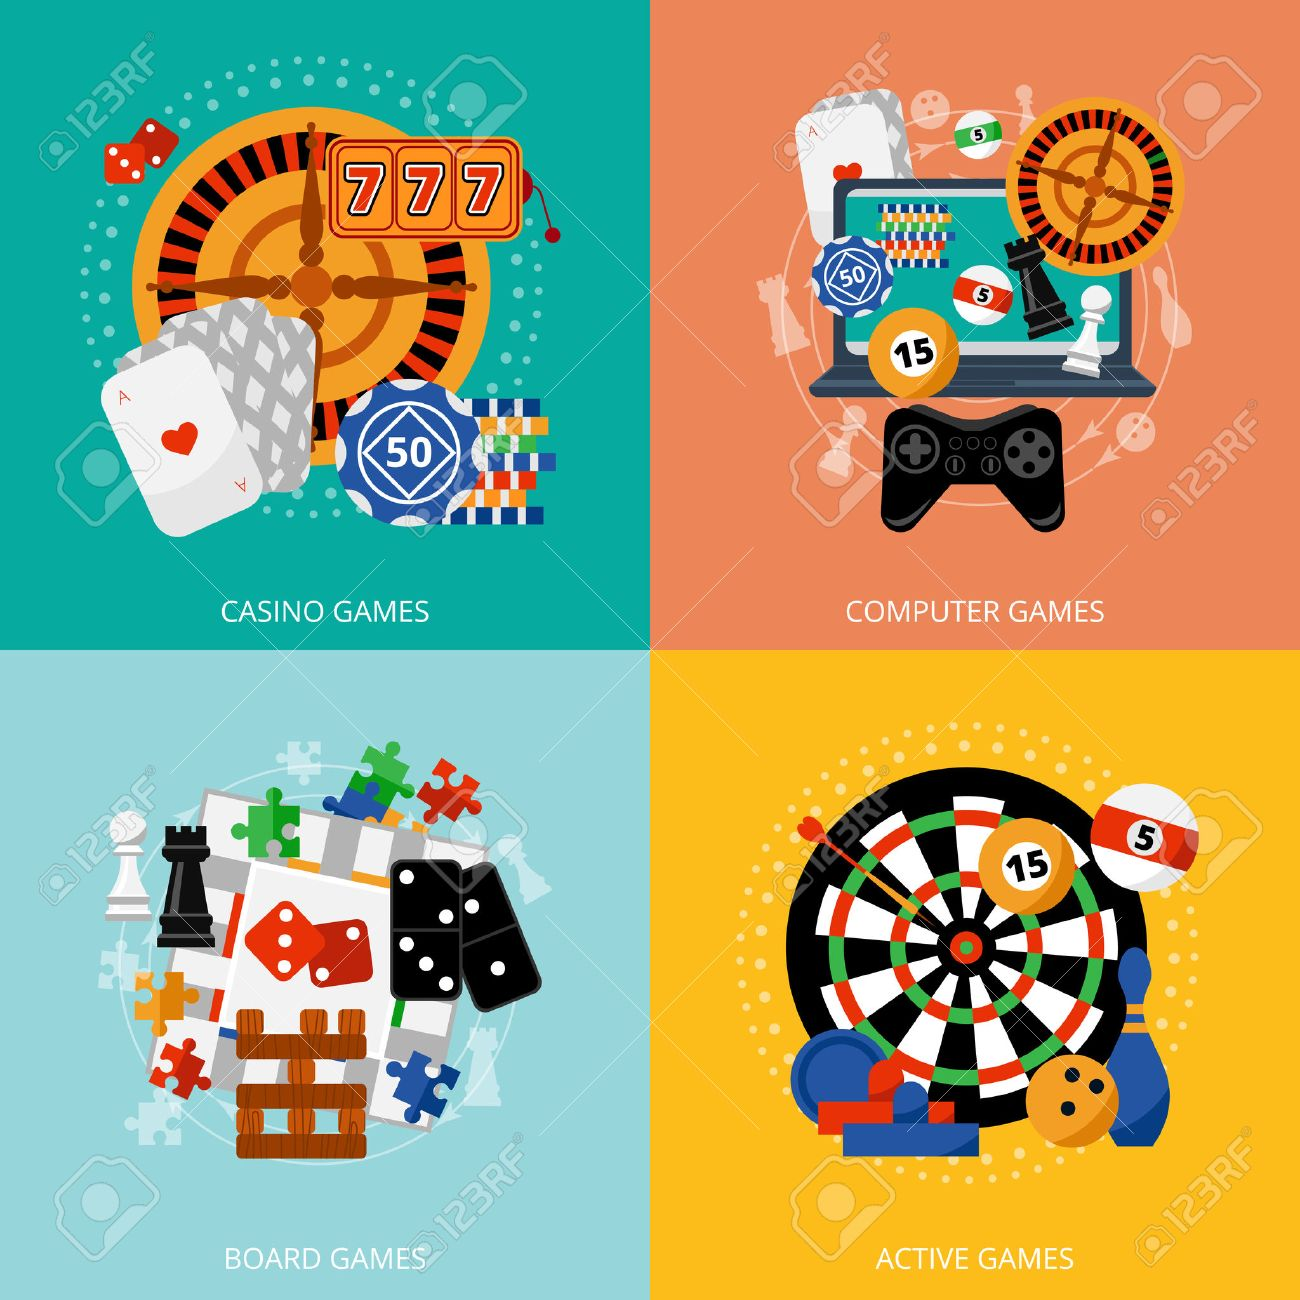 Traditional european roulette table vector illustration stock vector - Online Gambling Popular Gambling Games Of Fortune Entertainment Casino Poster With 4 Flat Icons Composition